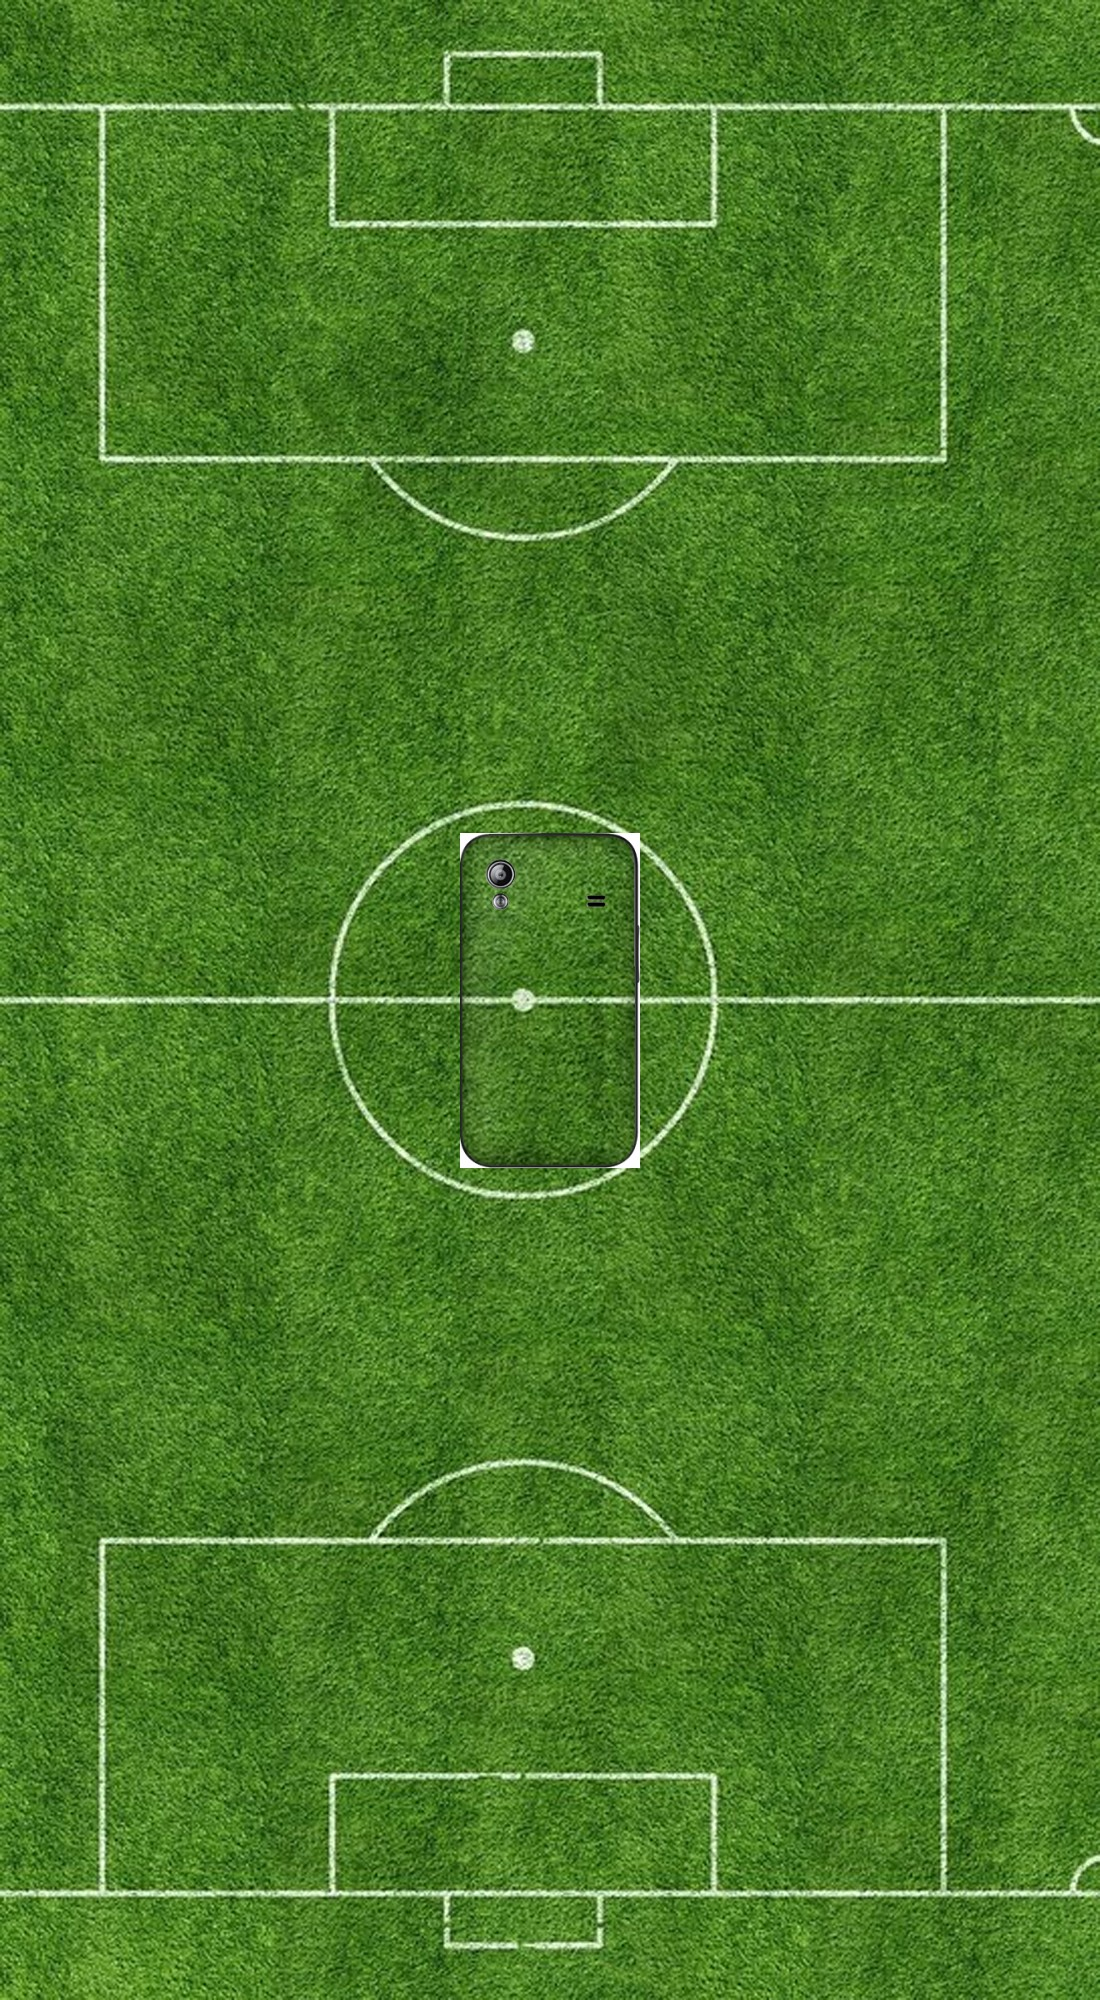 housse Terrain de football a clapet pour Samsung Galaxy Ace S5830